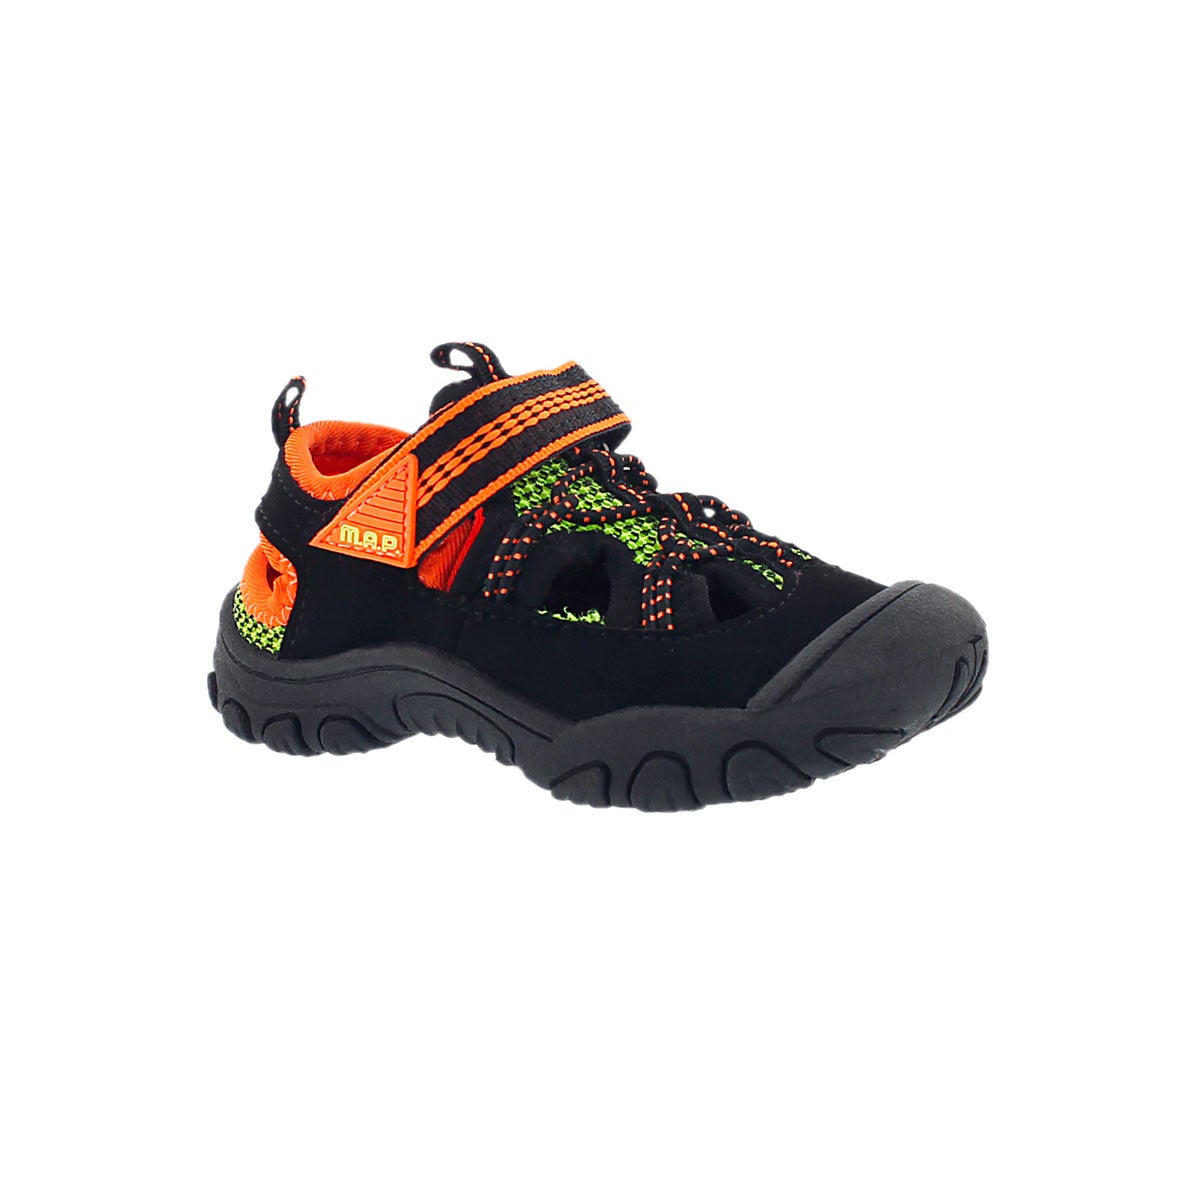 Infants' EMMONS black/orange fisherman sandals